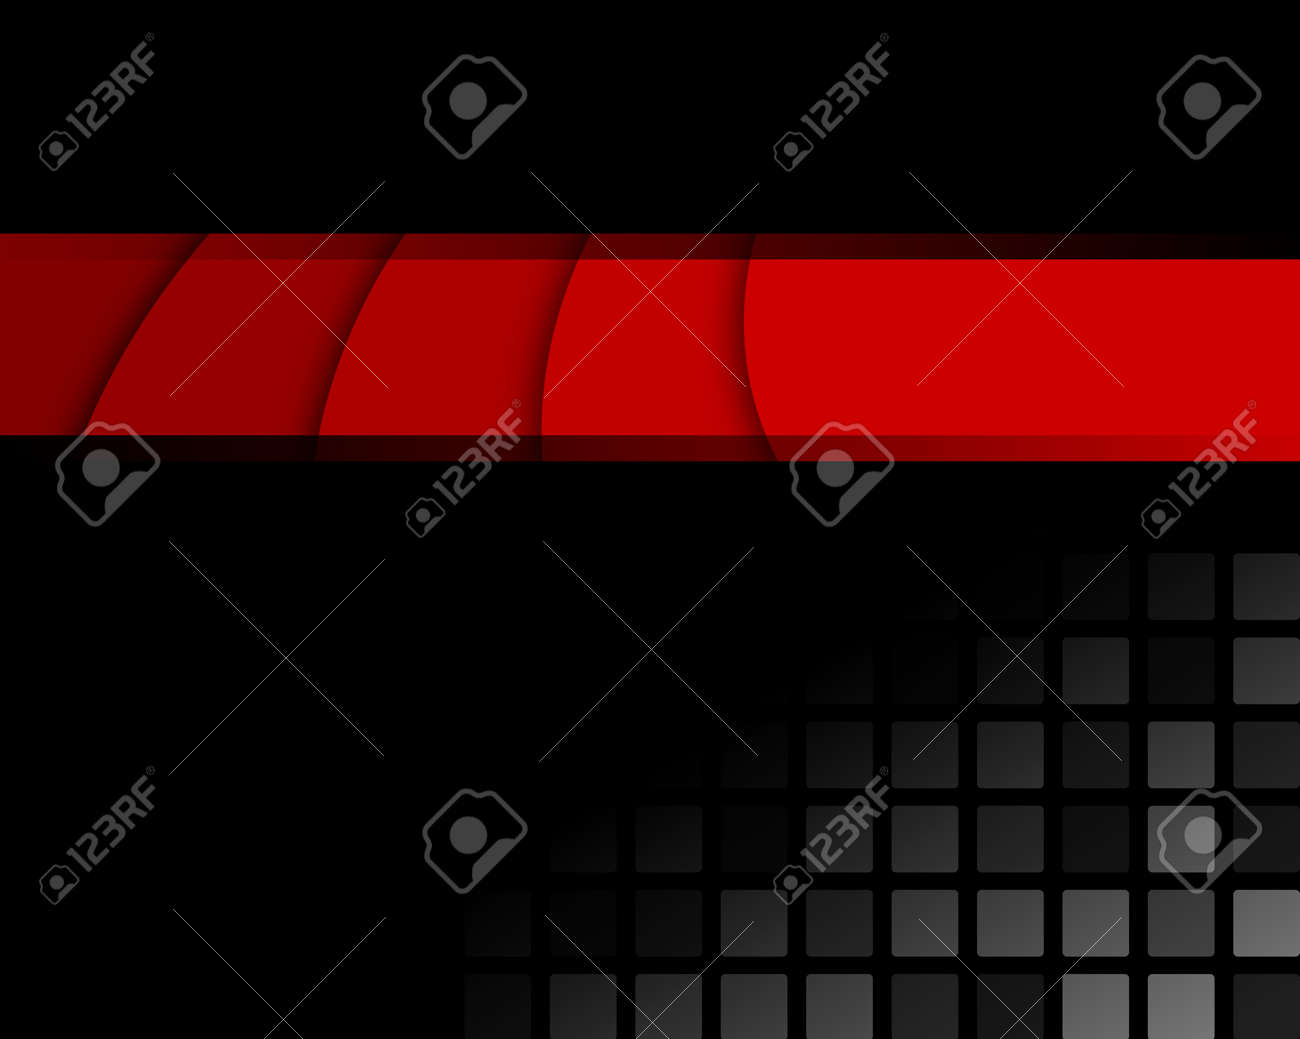 Black and red abstract background Full editable vector illustration - 27390312